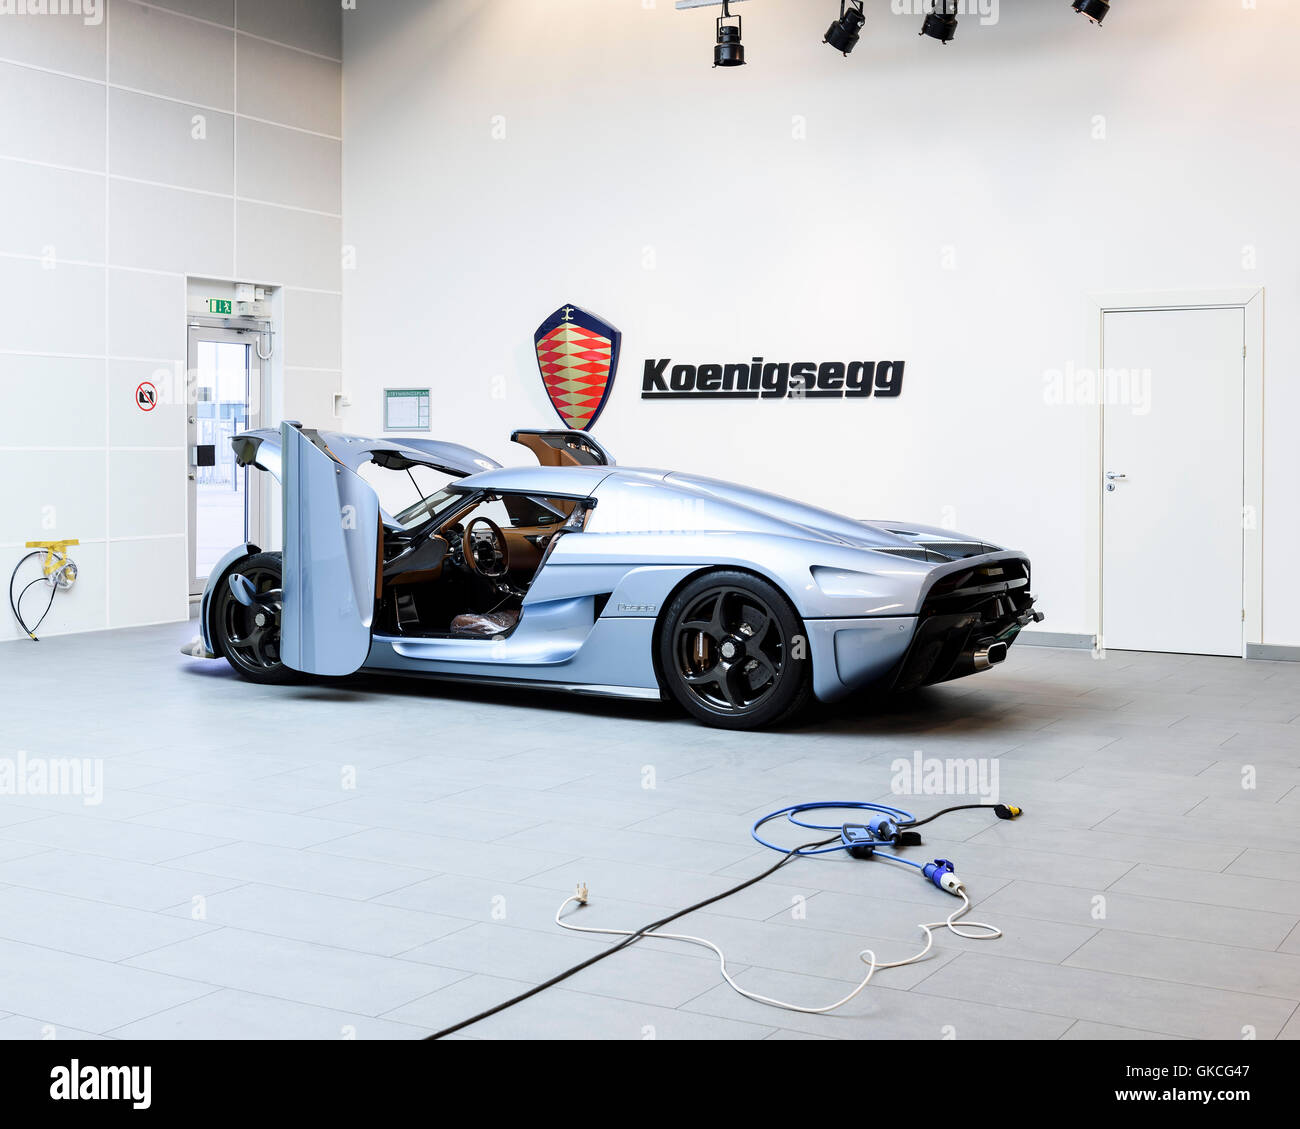 A Regera car ready to be tested. Koenigsegg Supercar Factory, Angelholm, Sweden. Architect: -, 2016. Stock Photo